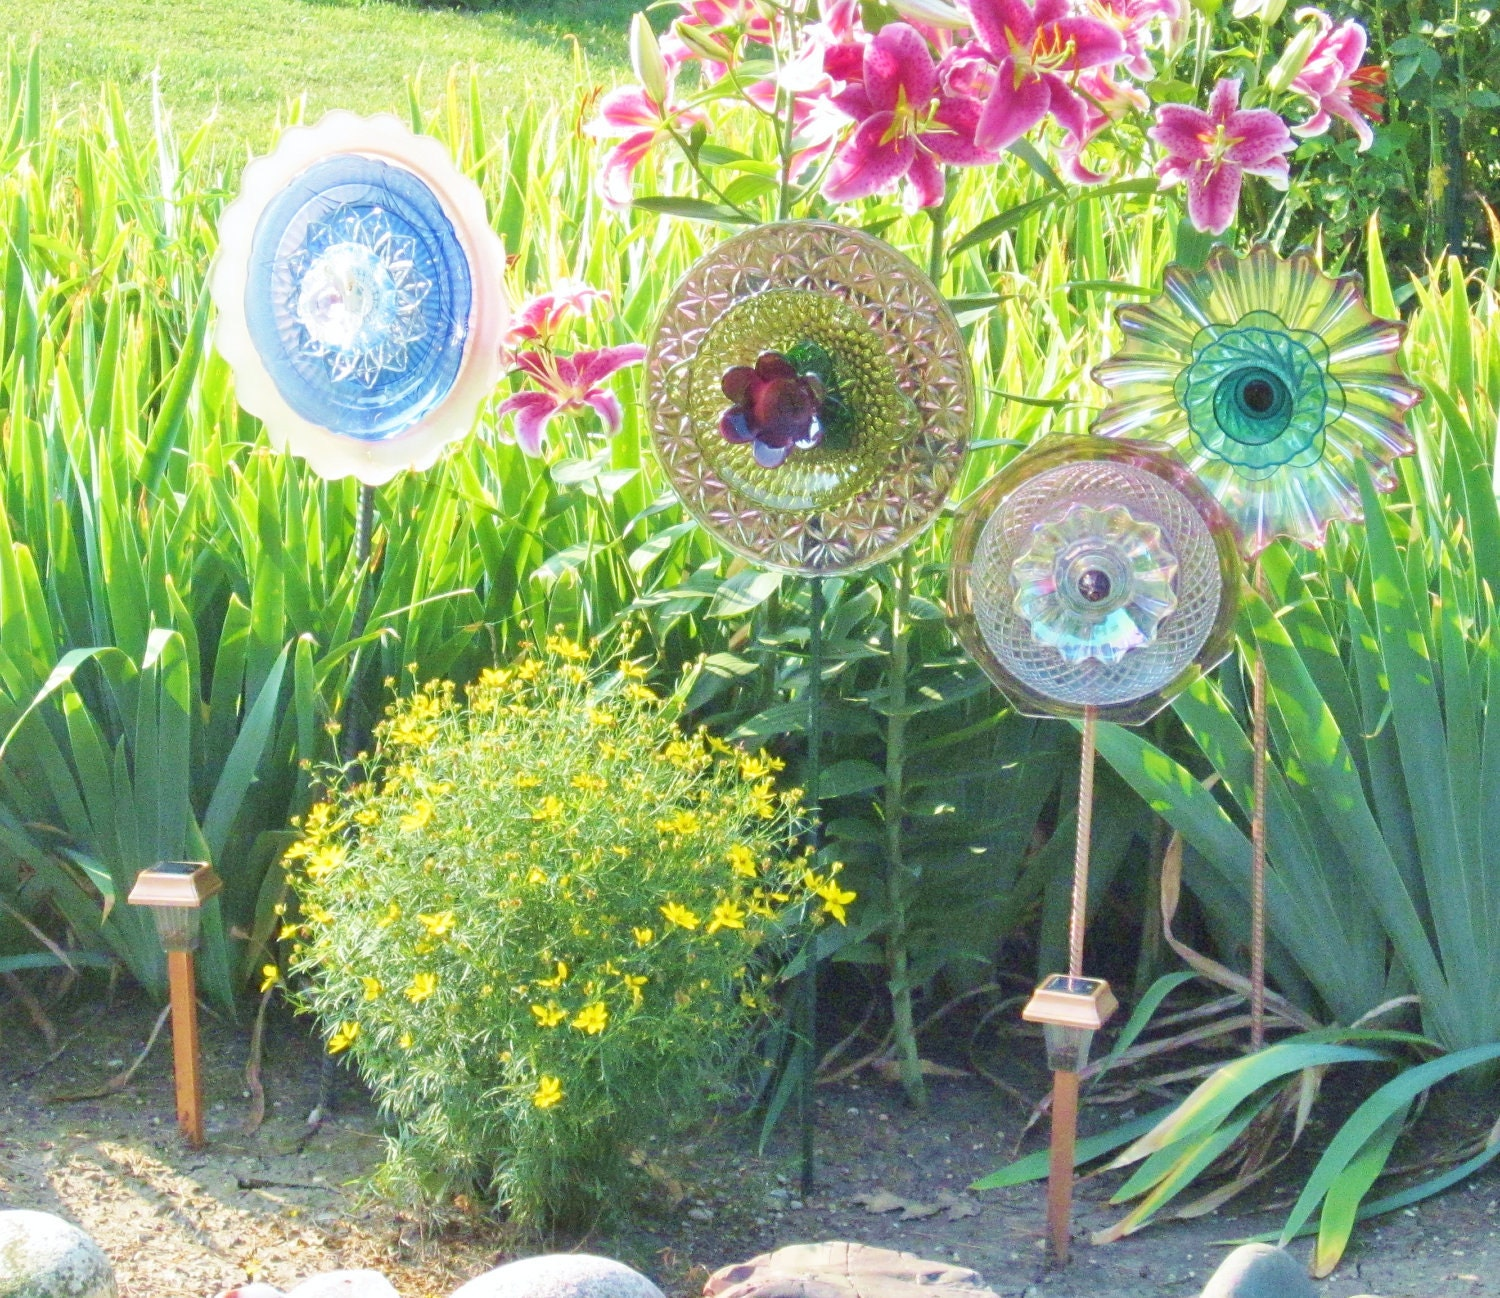 Lawn and garden decorative accessories garden decoration for Decorative garden accents